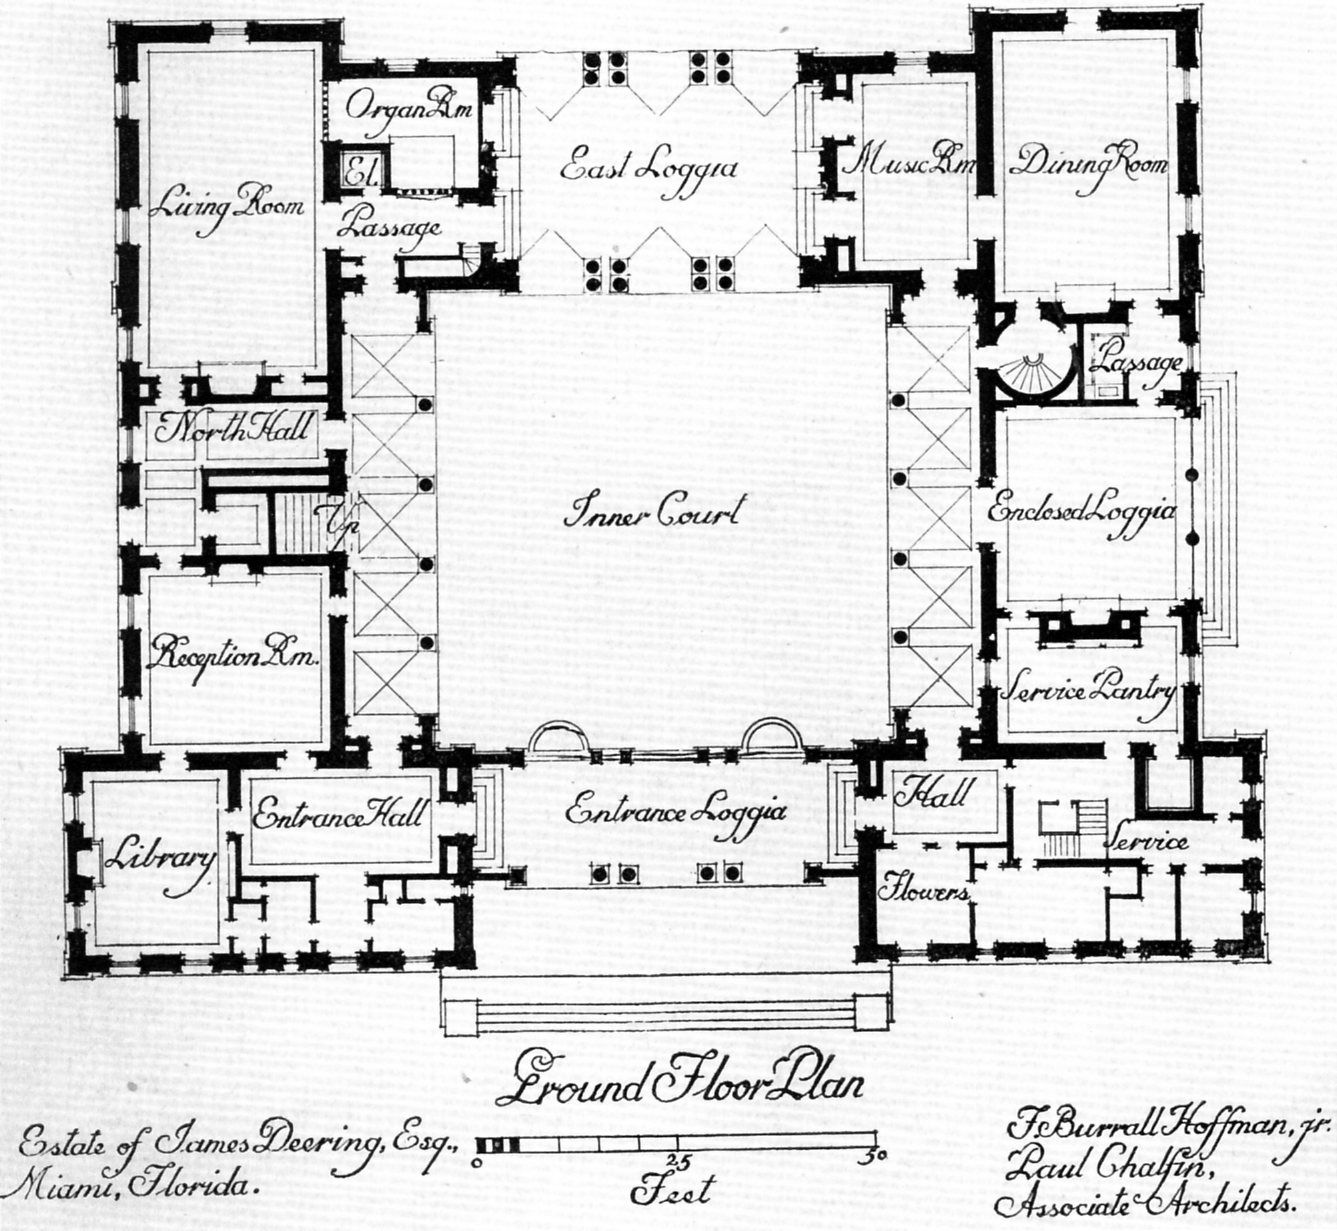 Central Courtyard House Plans House Plans Courtyard House Plans Mediterranean House Plans U Shaped House Plans